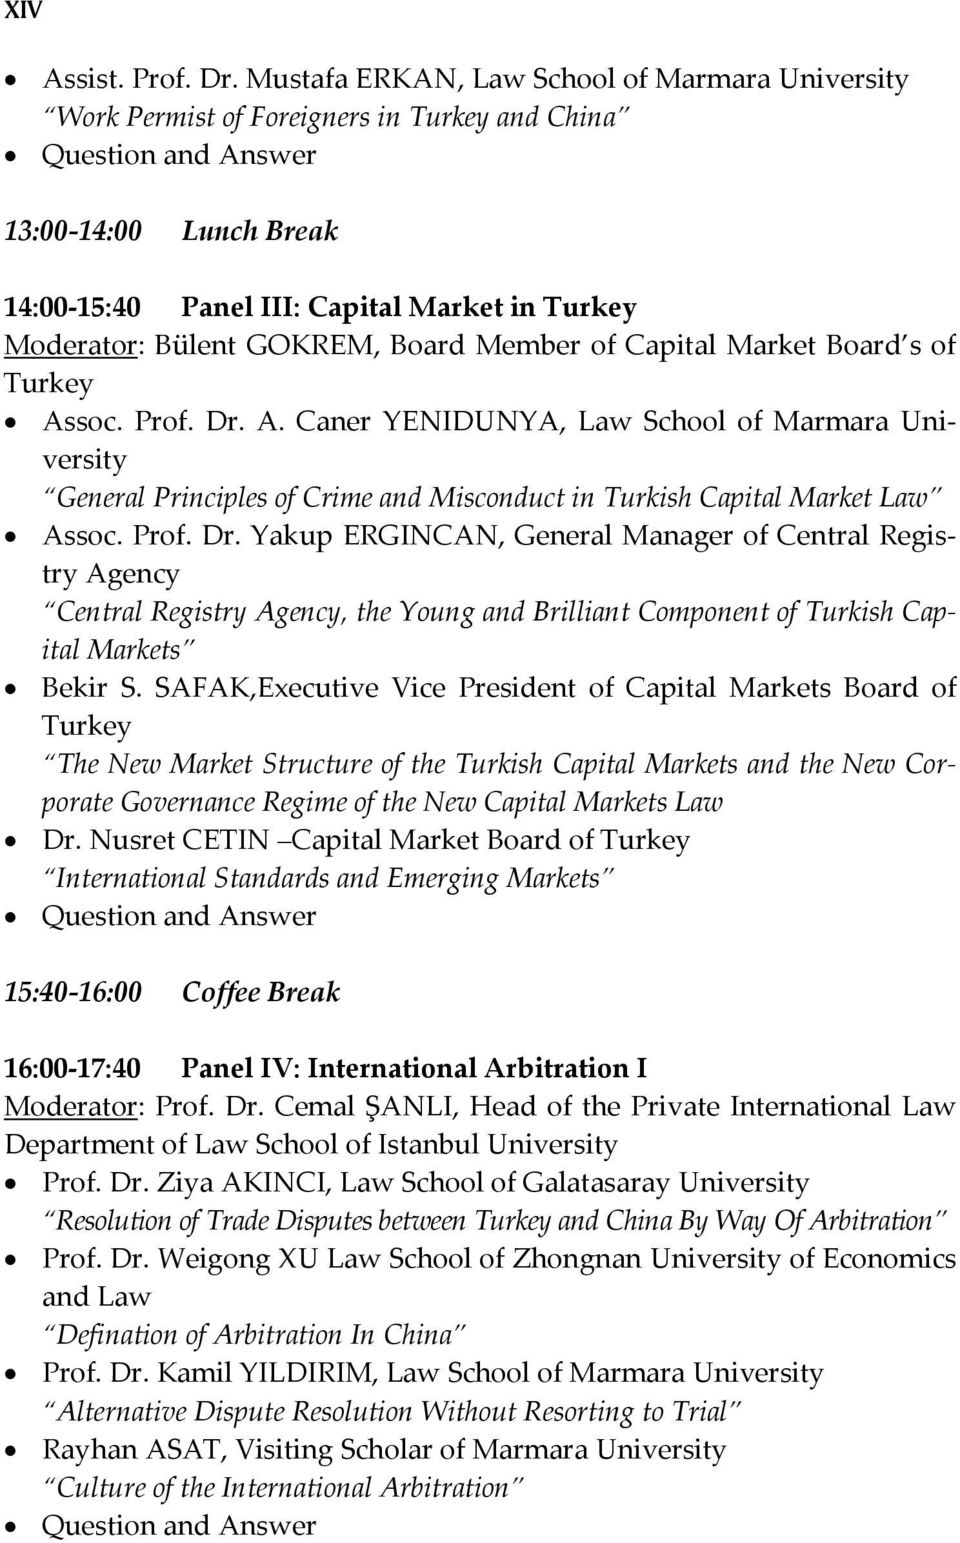 Bülent GOKREM, Board Member of Capital Market Board s of Turkey Assoc. Prof. Dr. A. Caner YENIDUNYA, Law School of Marmara University General Principles of Crime and Misconduct in Turkish Capital Market Law Assoc.